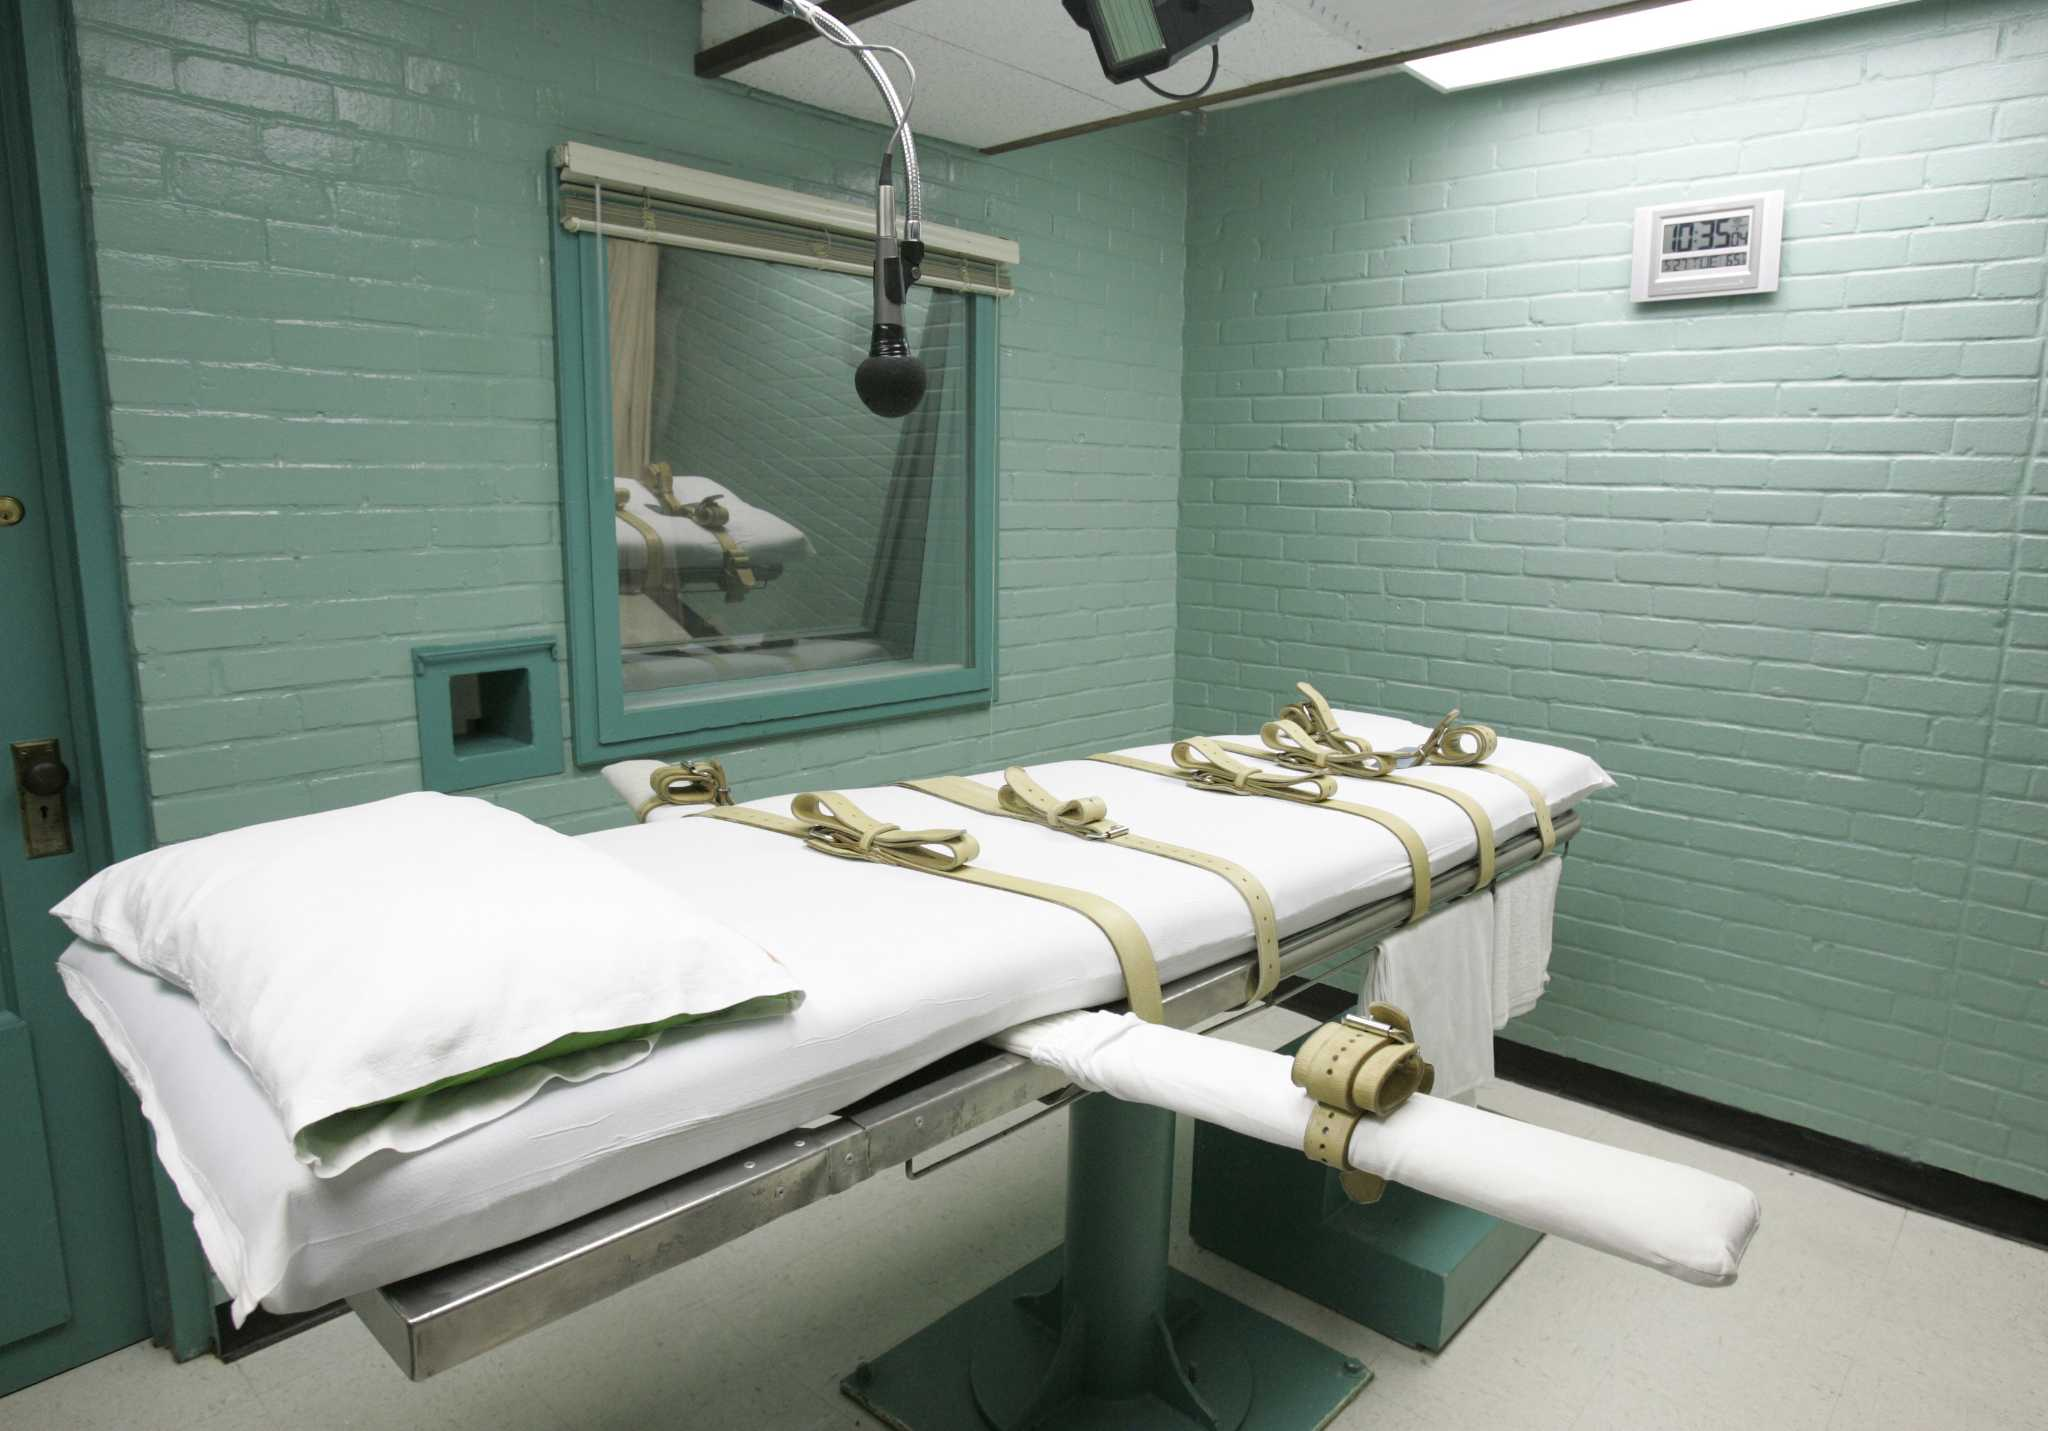 Less than half of Americans think death penalty applied fairly according to Gallup poll